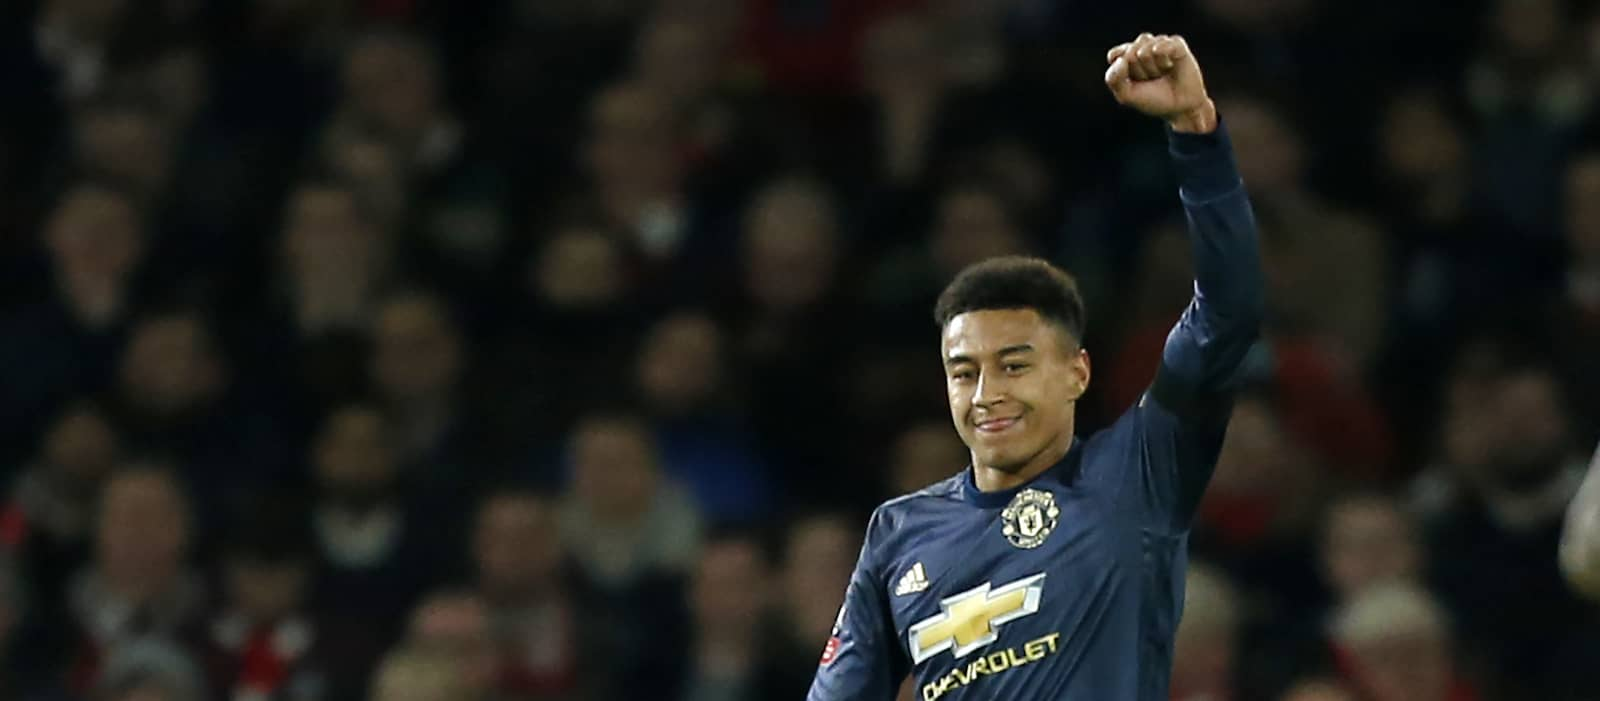 Jesse Lingard's Emirates extravaganza shows why he deserves to start big games for Manchester United